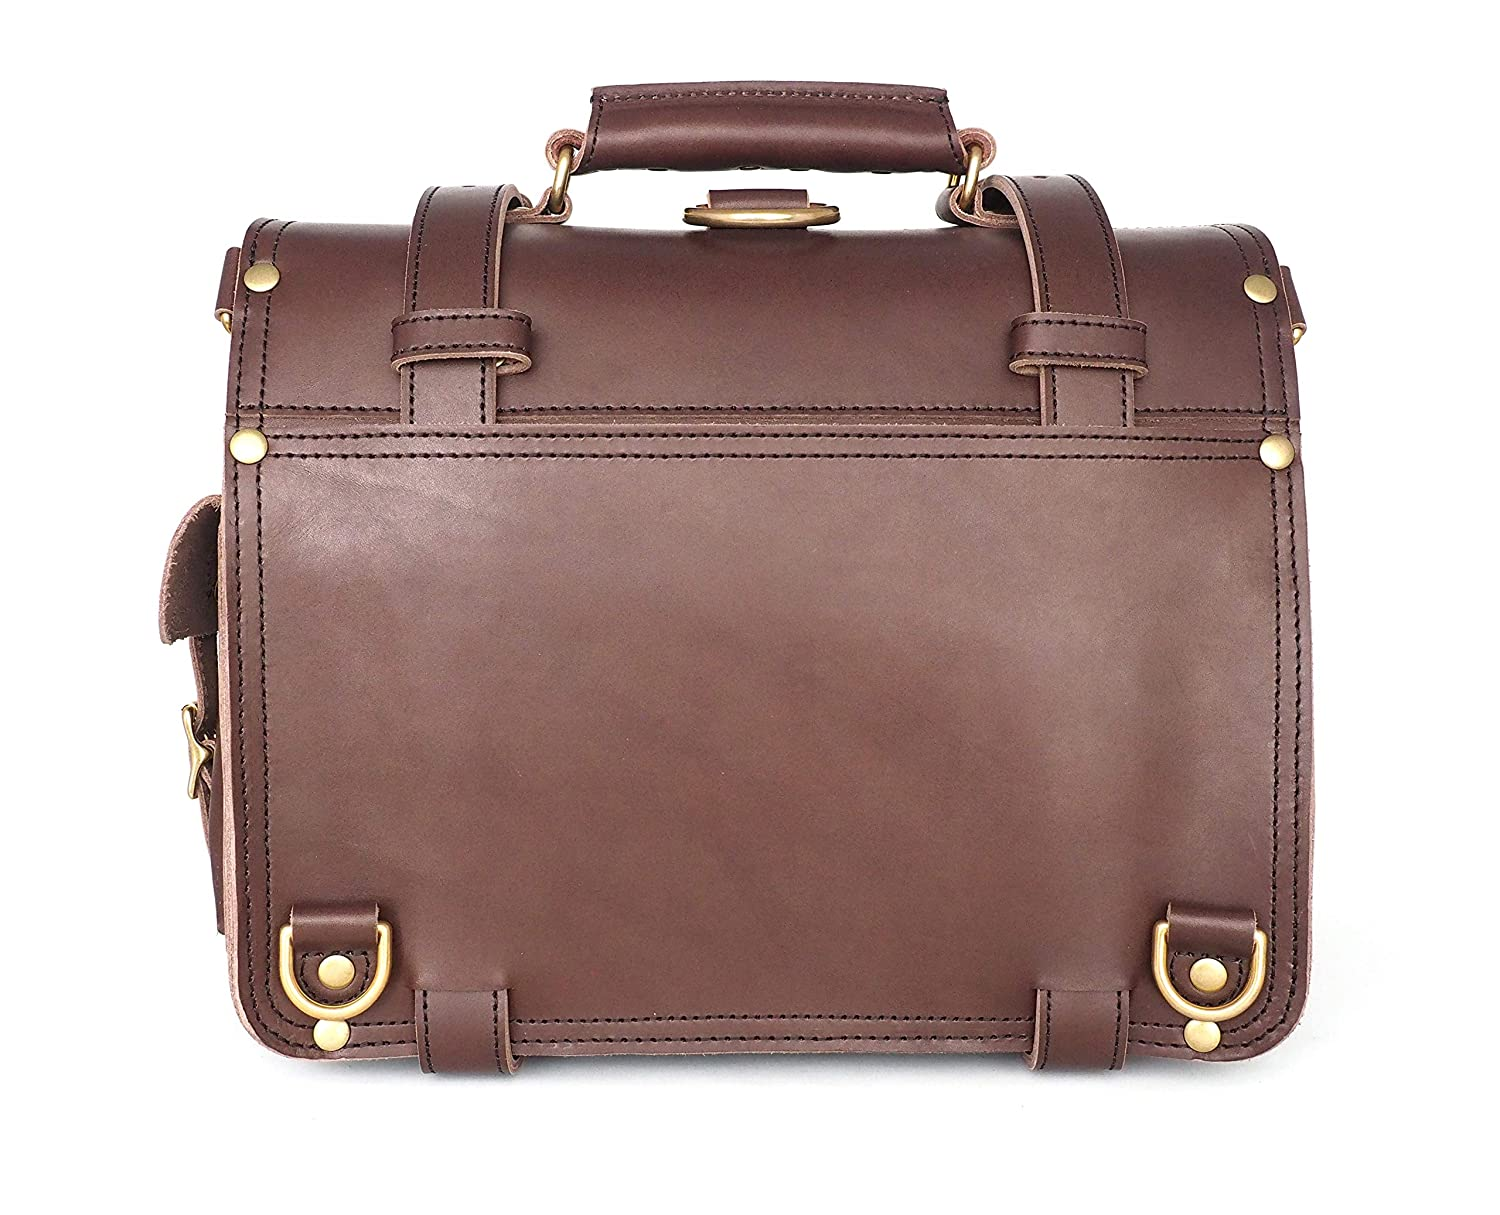 Solid Brass Hardware 14 TB01-B Full Grain Leather Solid Brass Hardware Marlondo Leather Double Space Briefcase 14, Black